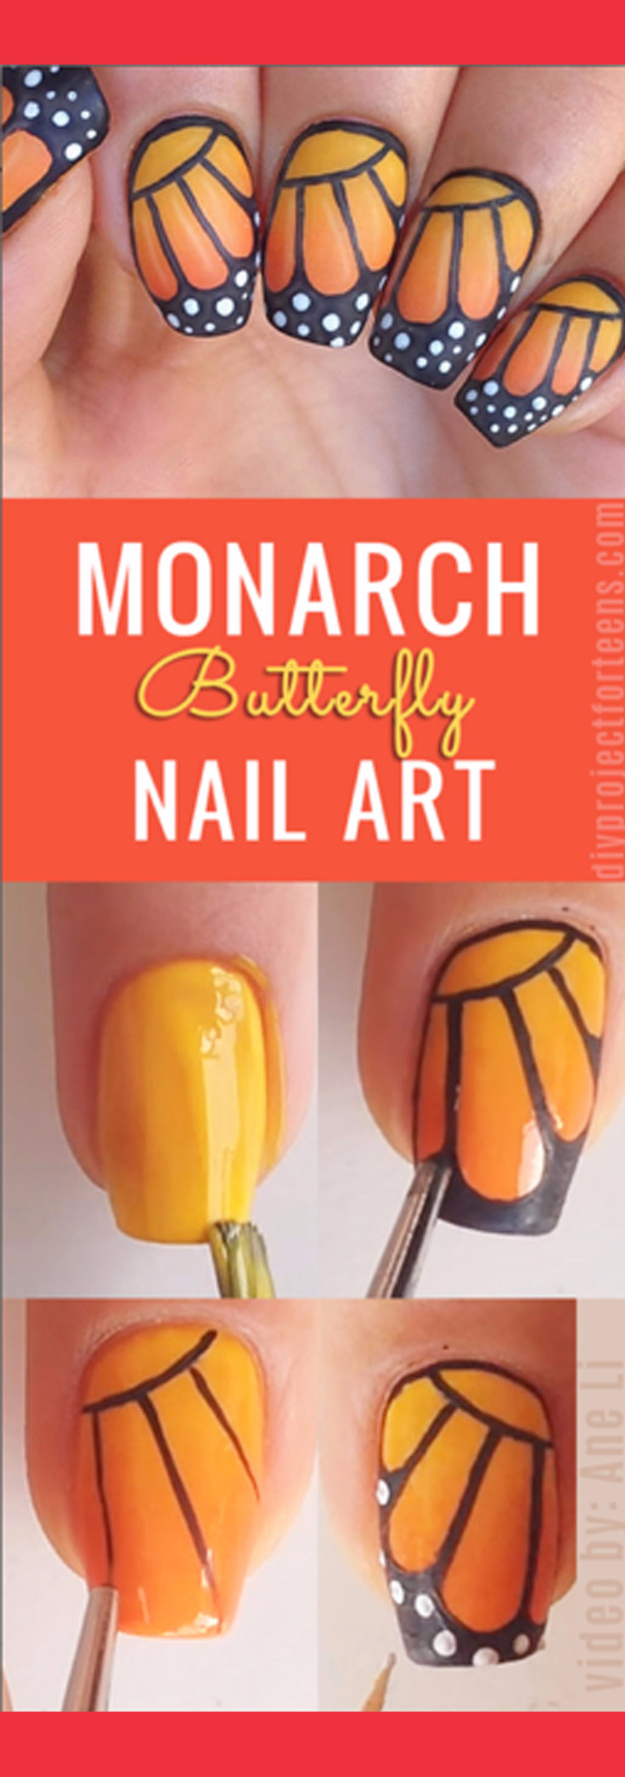 Awesome Nail Art Patterns And Ideas - DIY Monarch Butterfly Nail Art - Step by Step DIY Nail Design Tutorials for Simple Art, Tribal Prints, Best Black and White Manicures. Easy and Fun Colors, Shapes and Designs for Your Nails